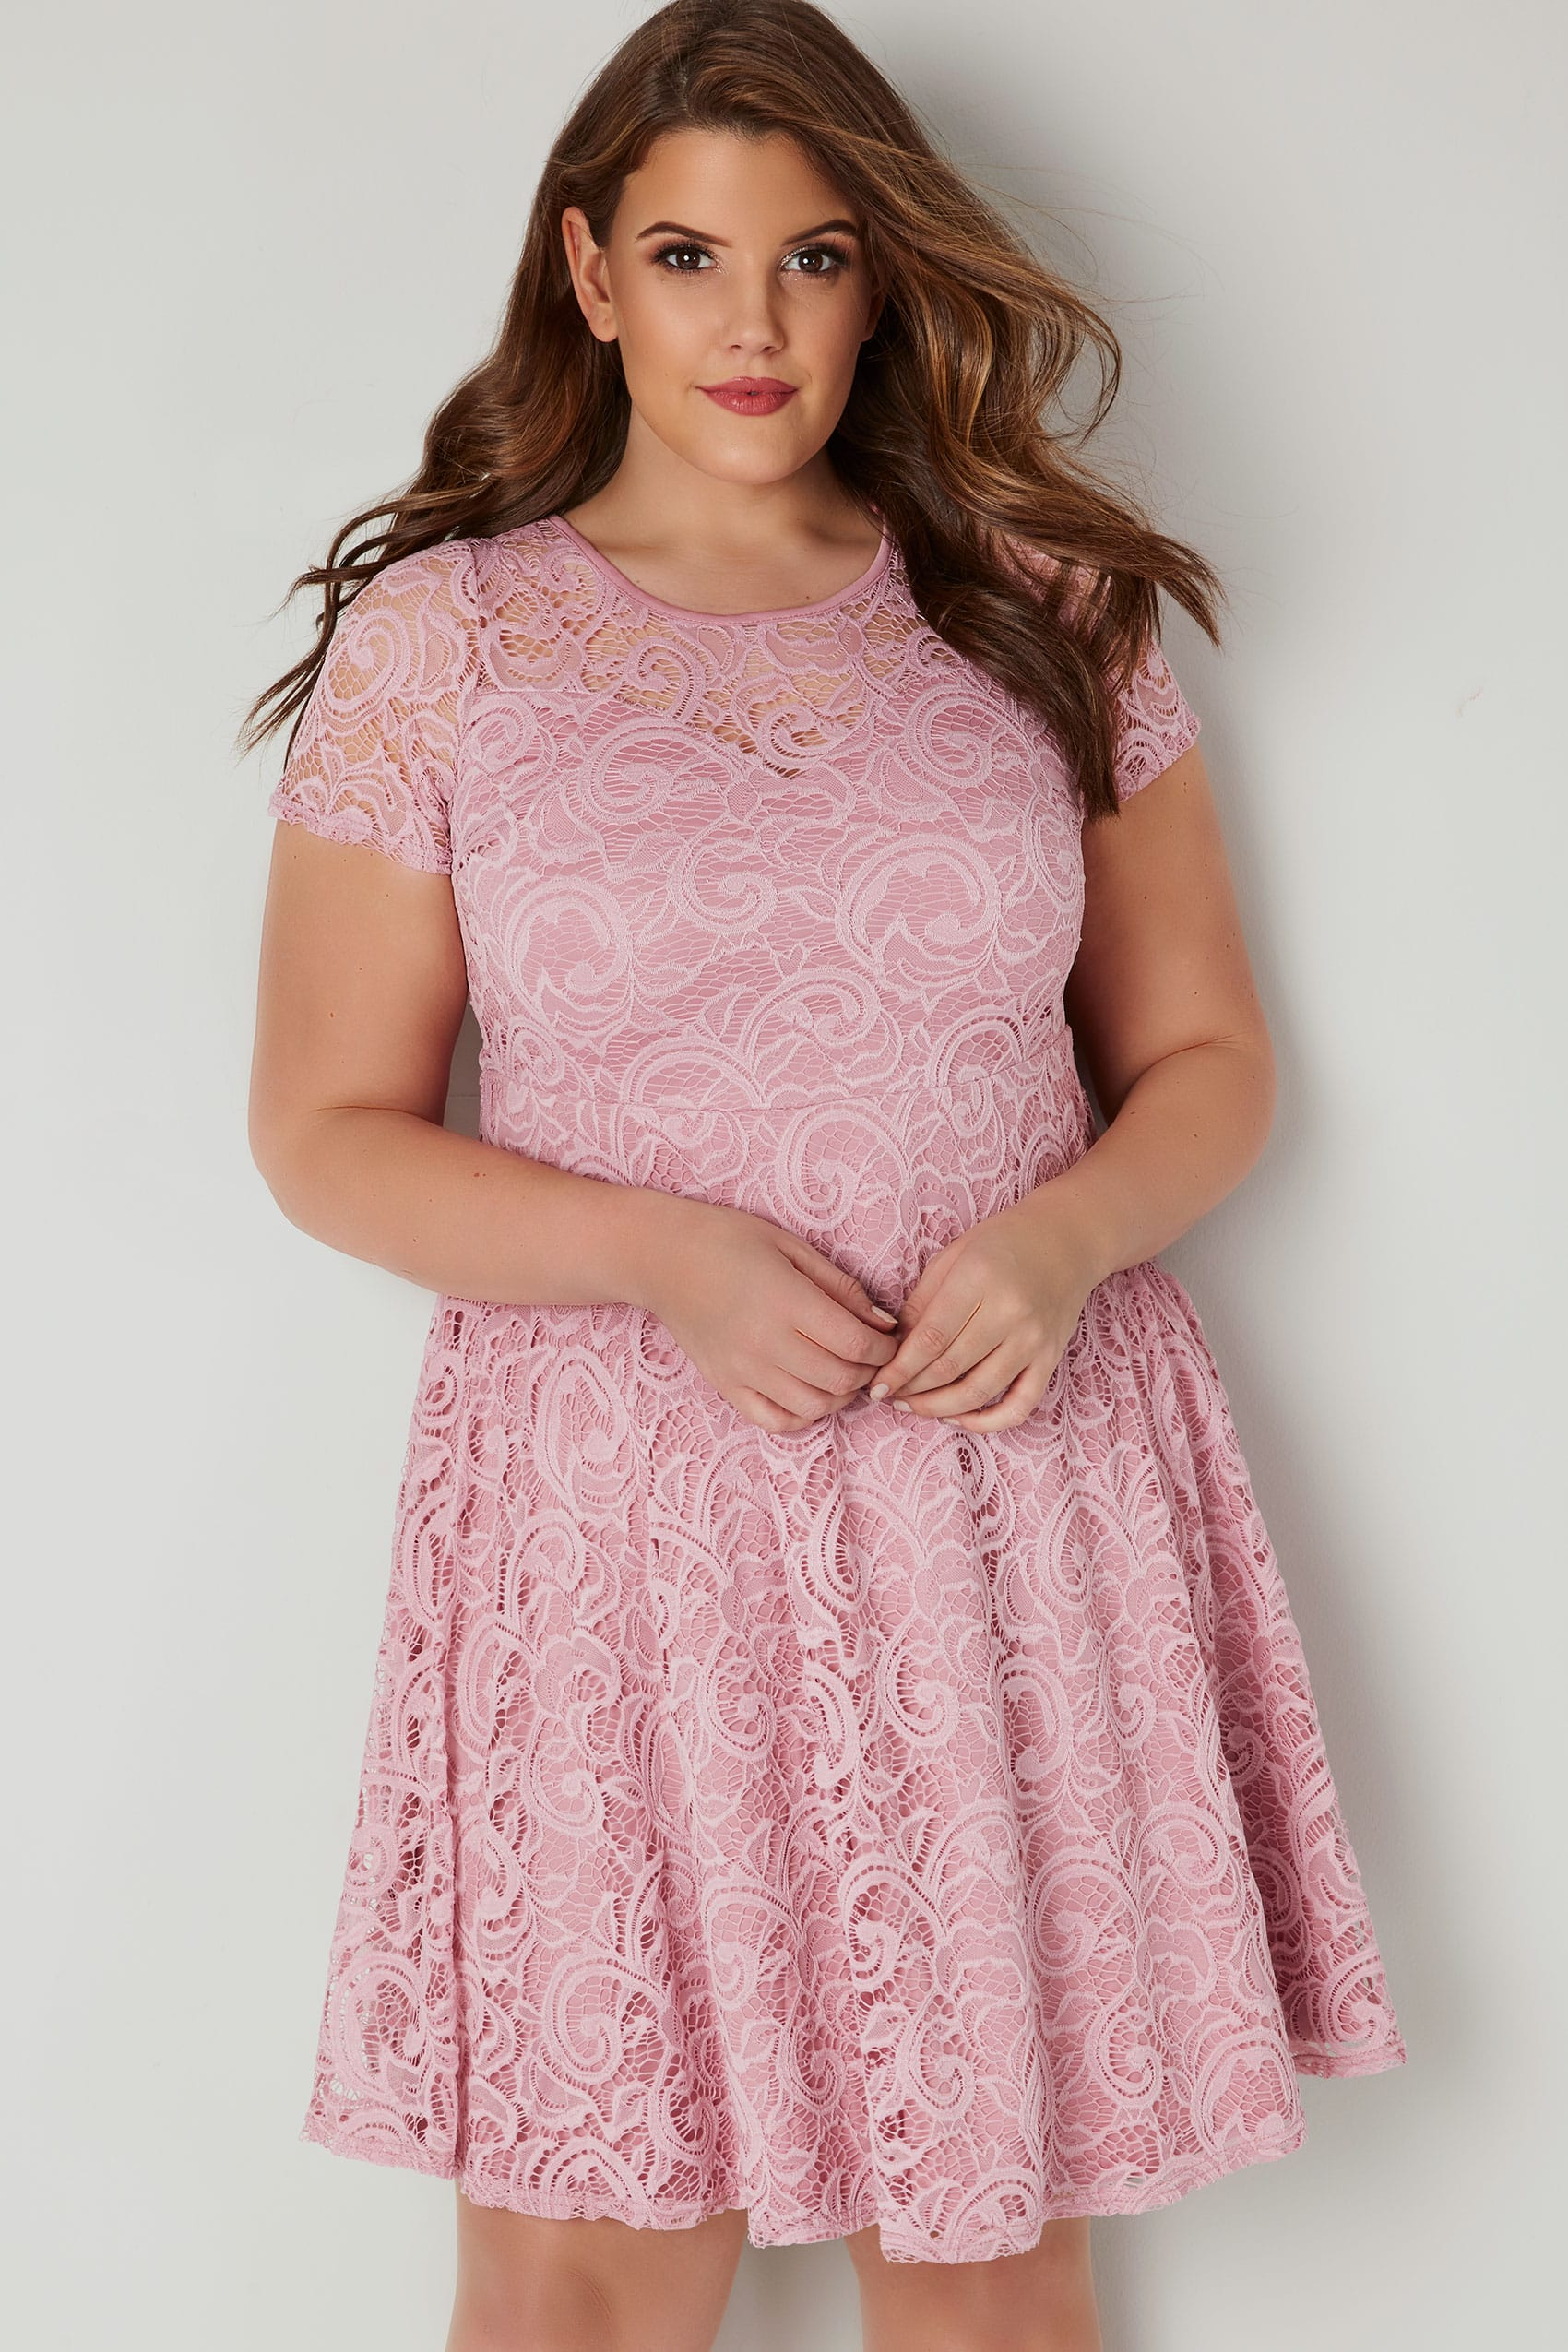 8f06027d9ed5 Pink Lace Skater Dress With Sweetheart Bust